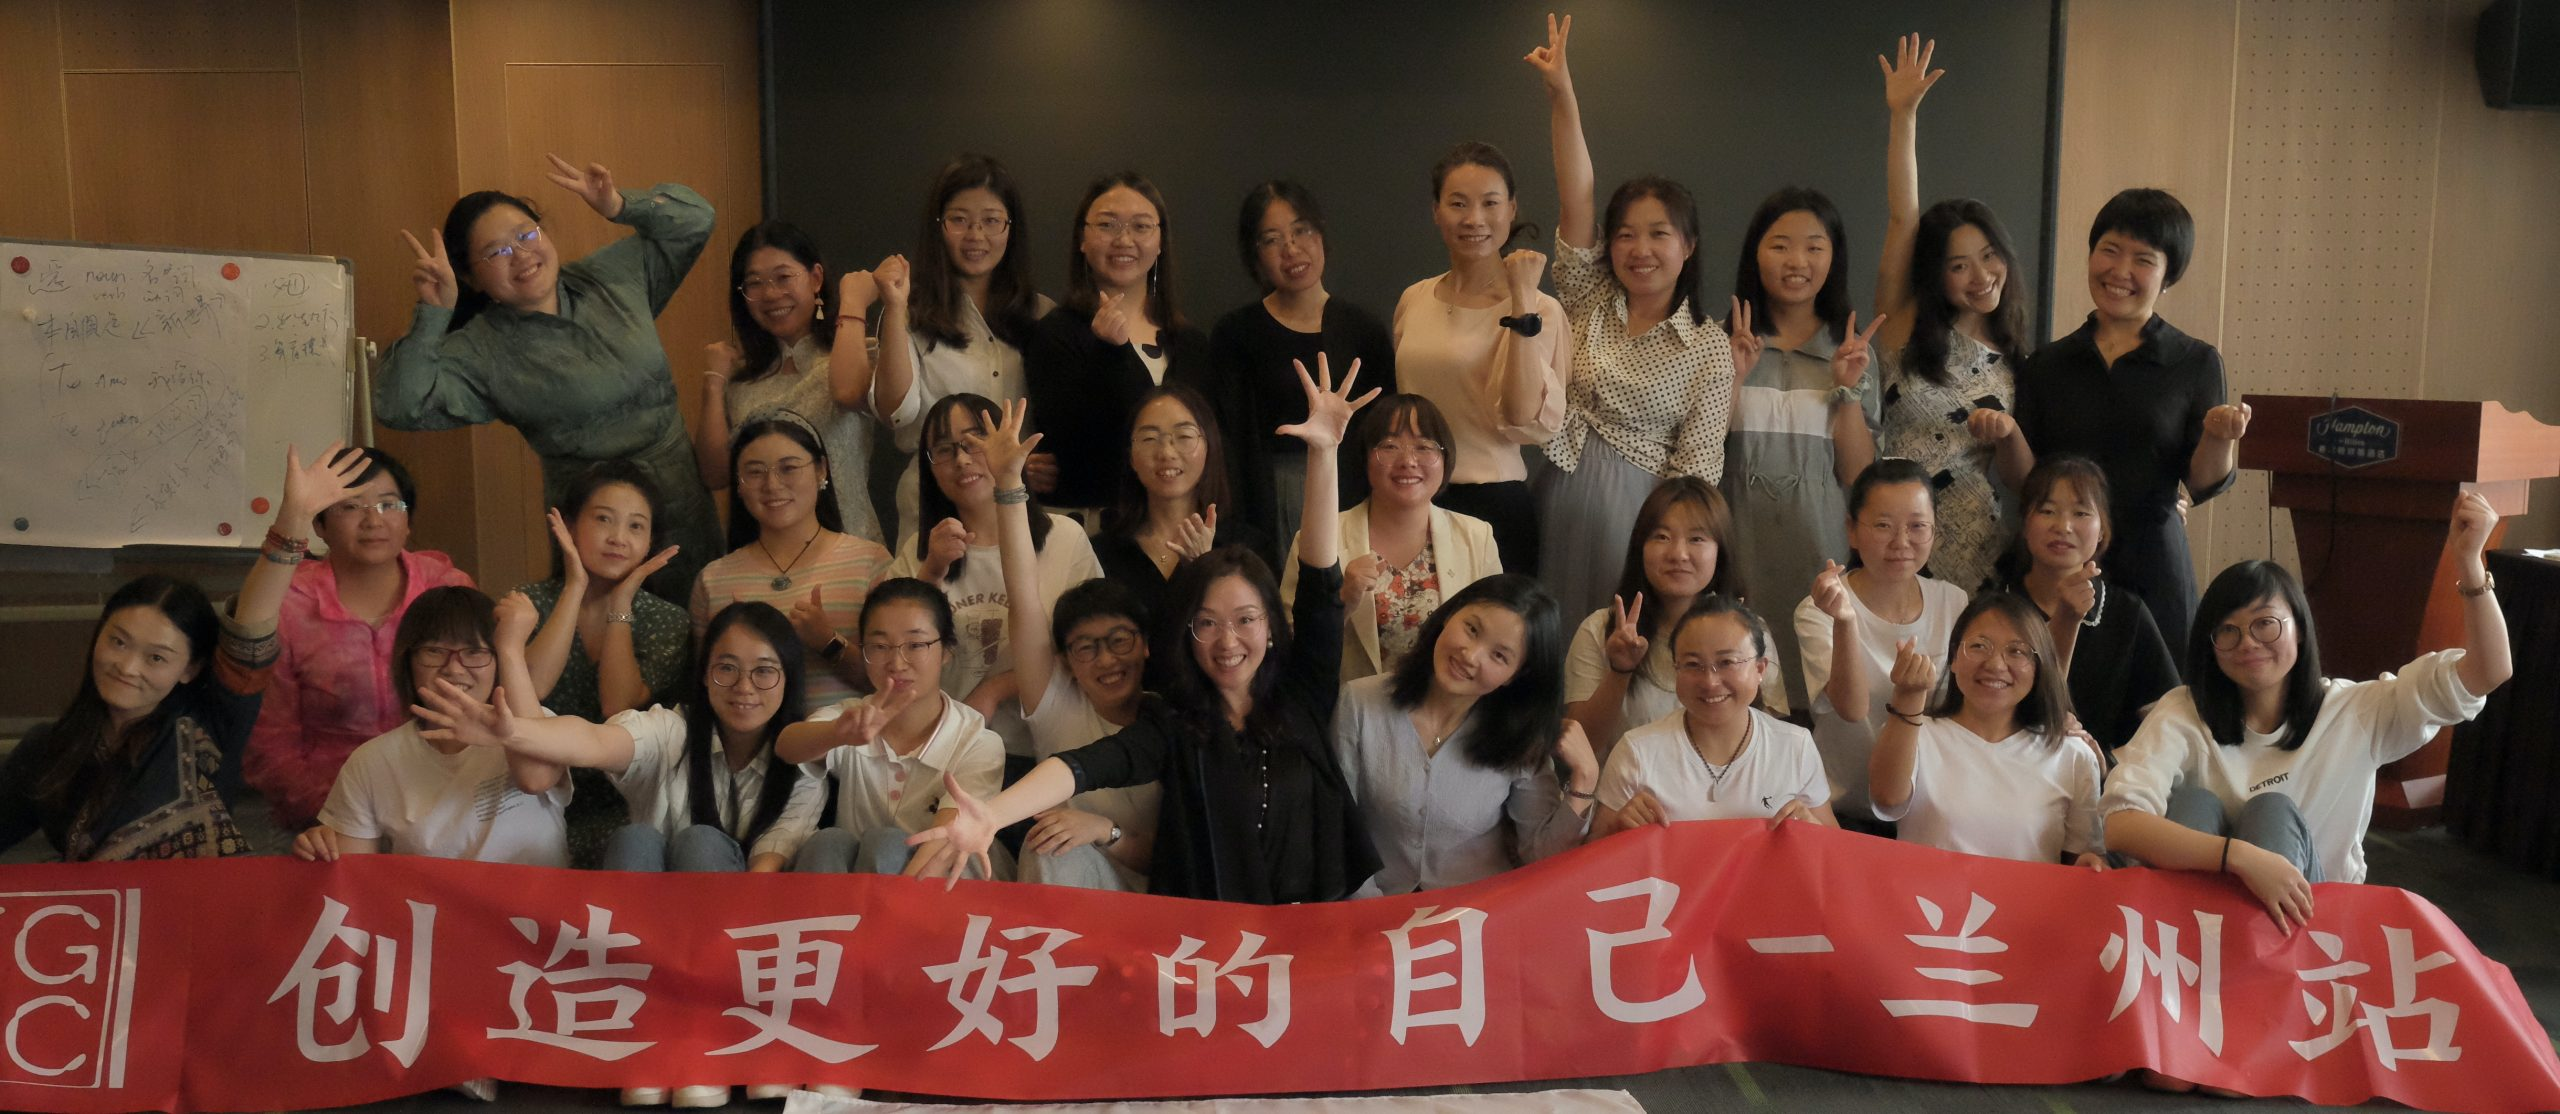 Girls standing behind a red EGRC banner, smiling and waving.